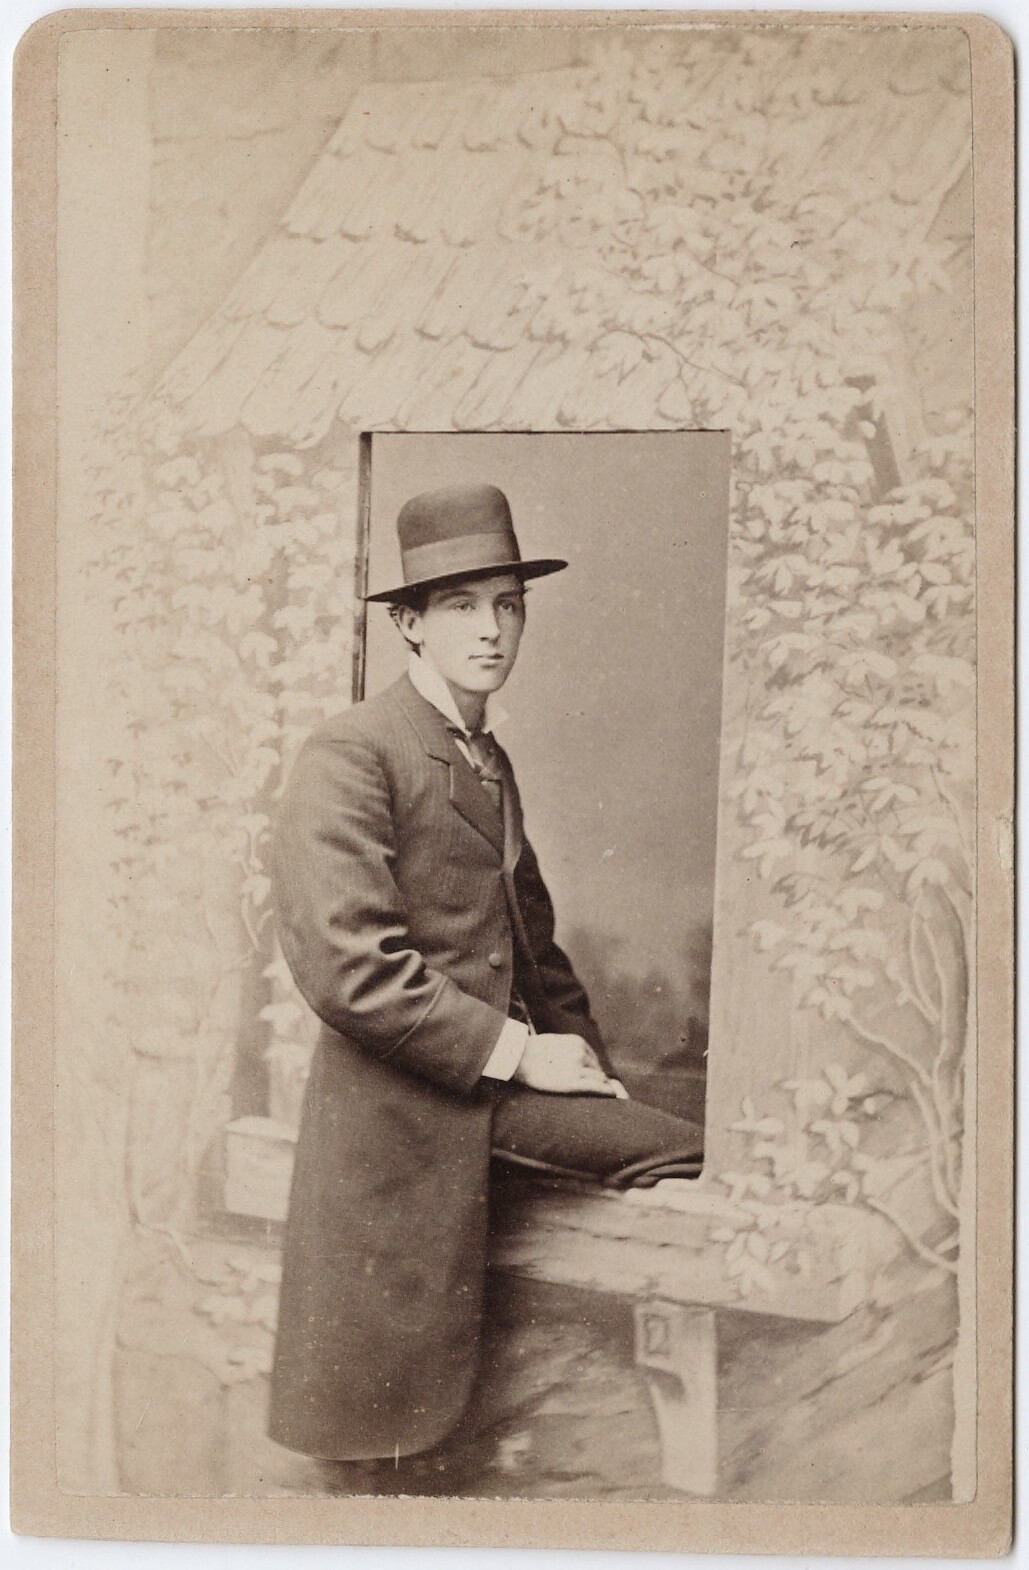 tuesday-johnson:  ca. 1855-95, [carte de visite portrait of Tom Coughlan sitting within a studio prop window], Charles Lake Cramer via the Yale Collection of Western Americana, Beinecke Rare Book and Manuscript Library, Carl Mautz Collection